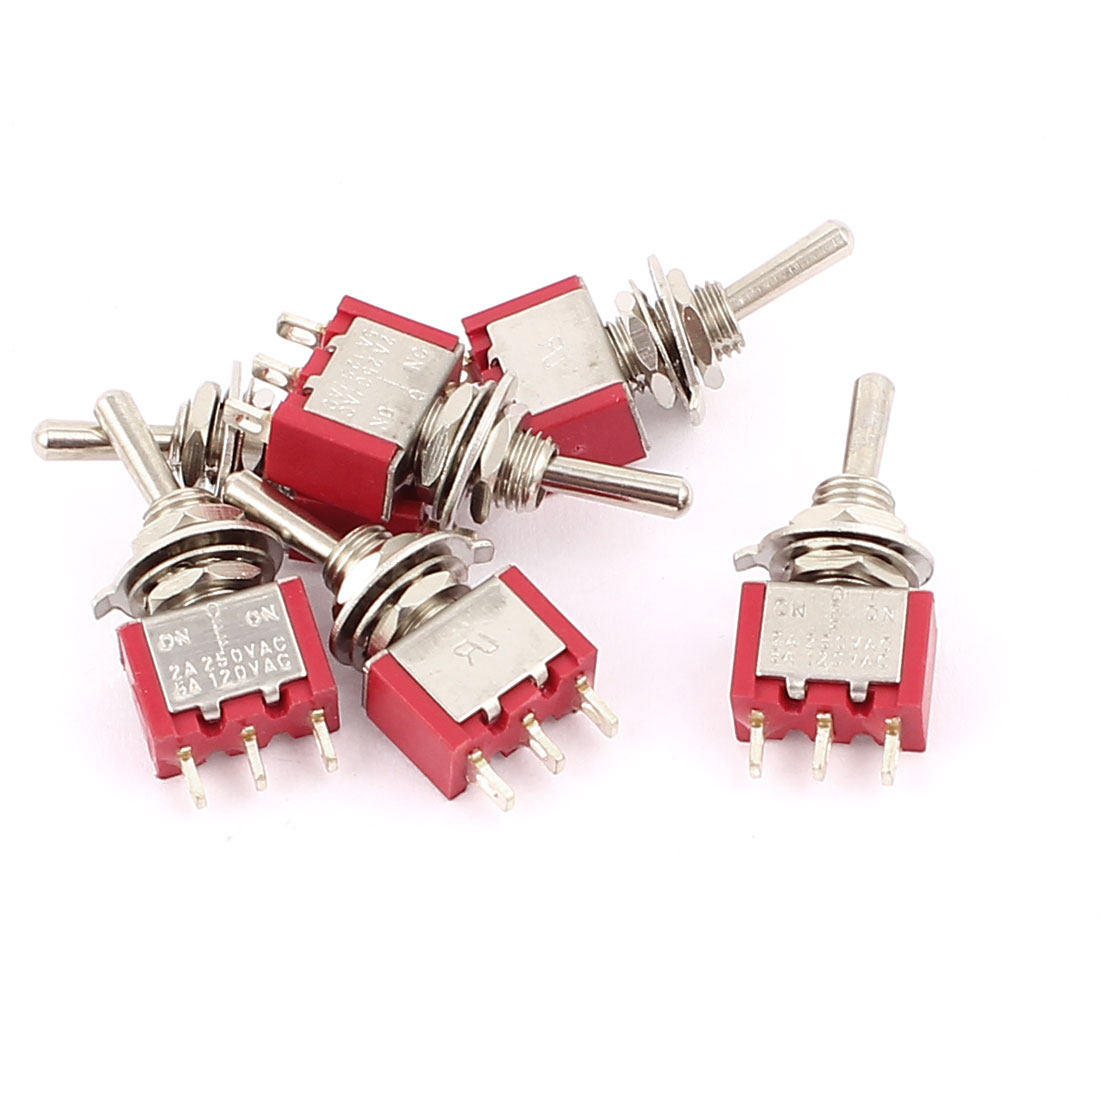 2A250VAC 5A120VAC 6PCS SPDT ON/OFF/ON 3 Position Electric Toggle Switch Red 6MM